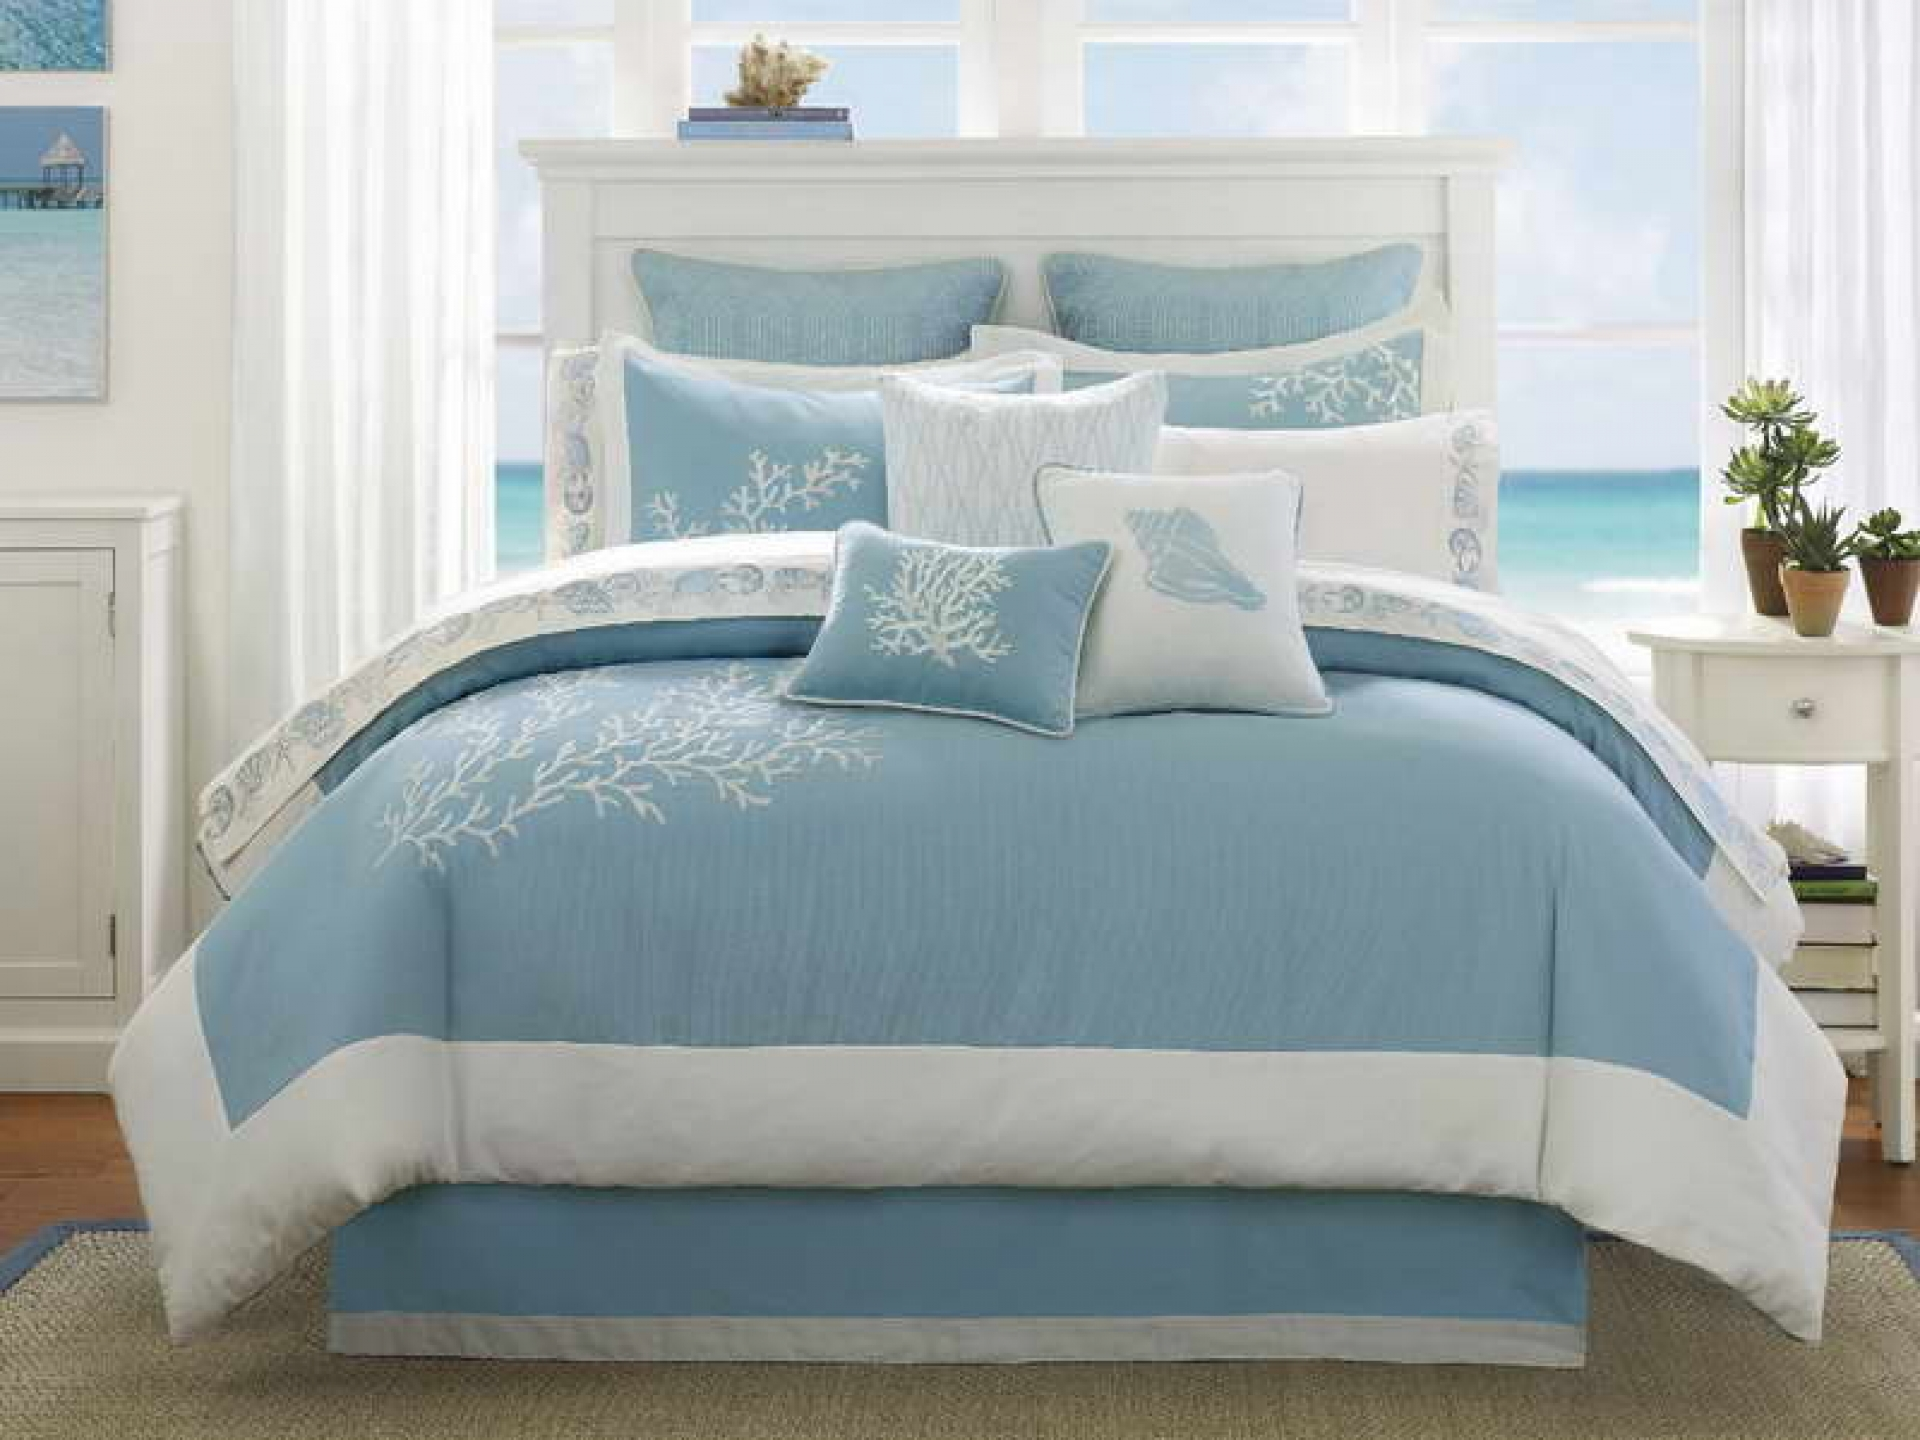 Cottage bedroom decorating - Luxurious And Cozy Blue Beach Bed Cover And Pillows Higher Free Standing Headboard Higher Bedside Table